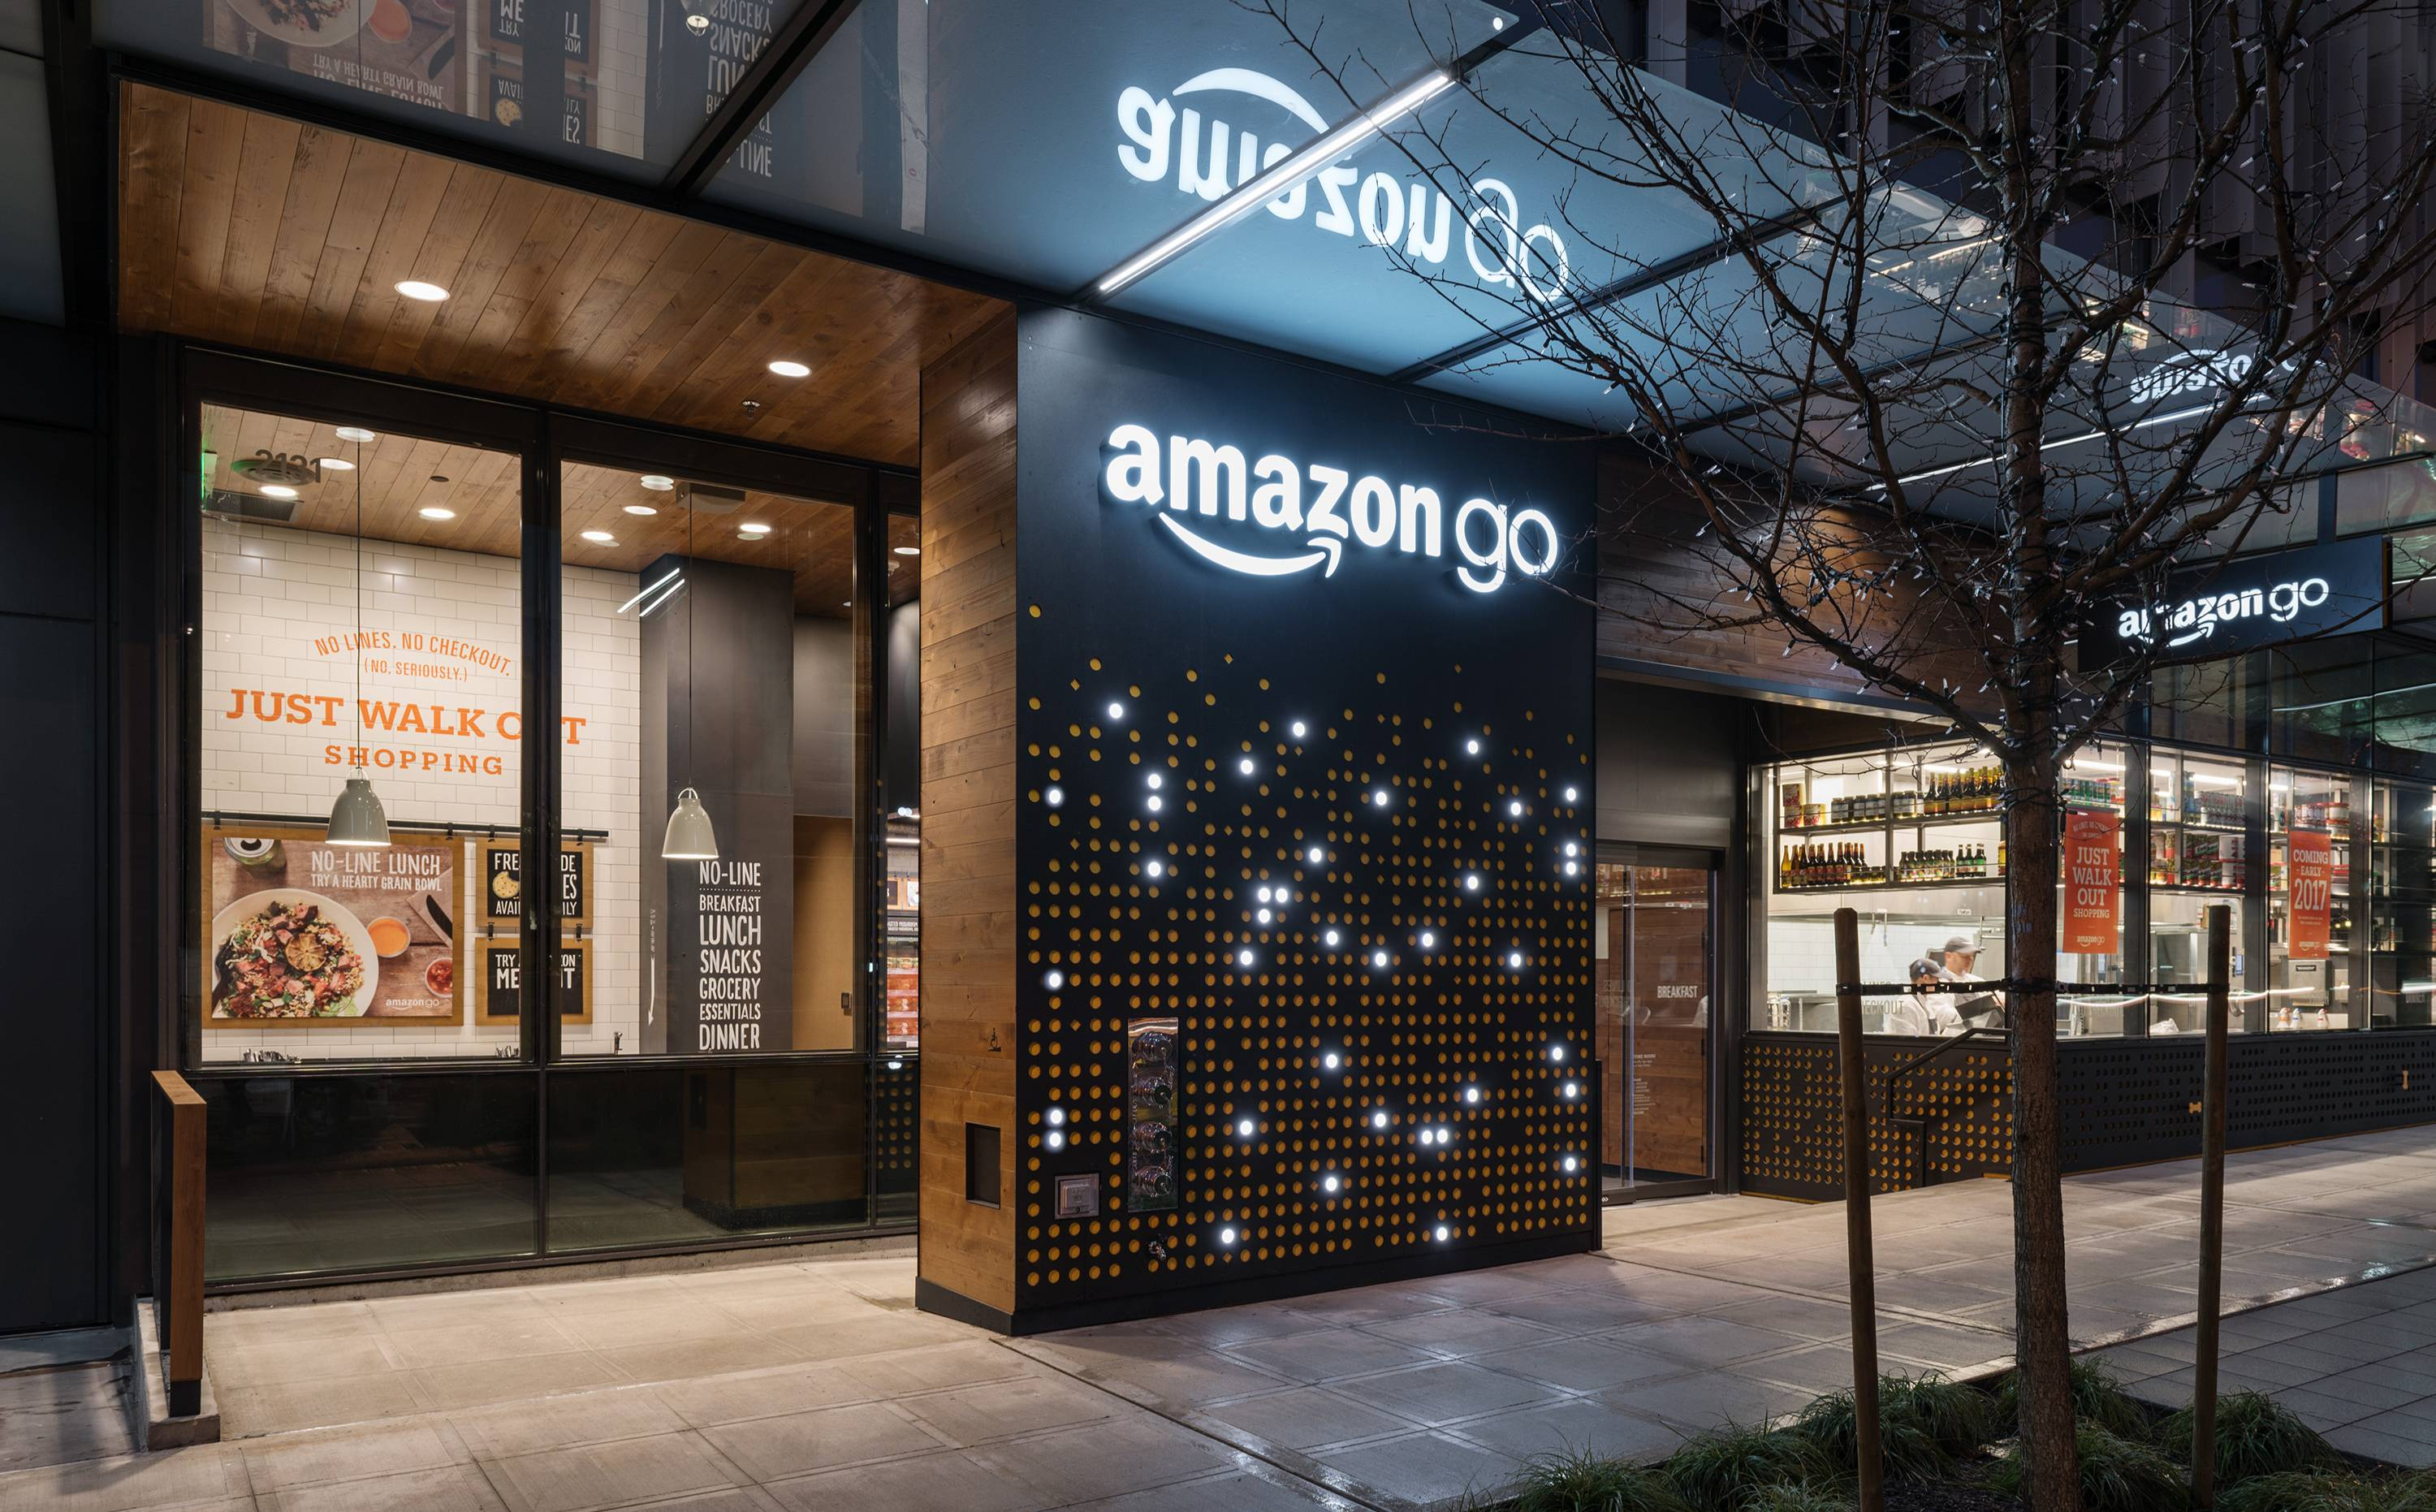 Amazon sued for racial discrimination